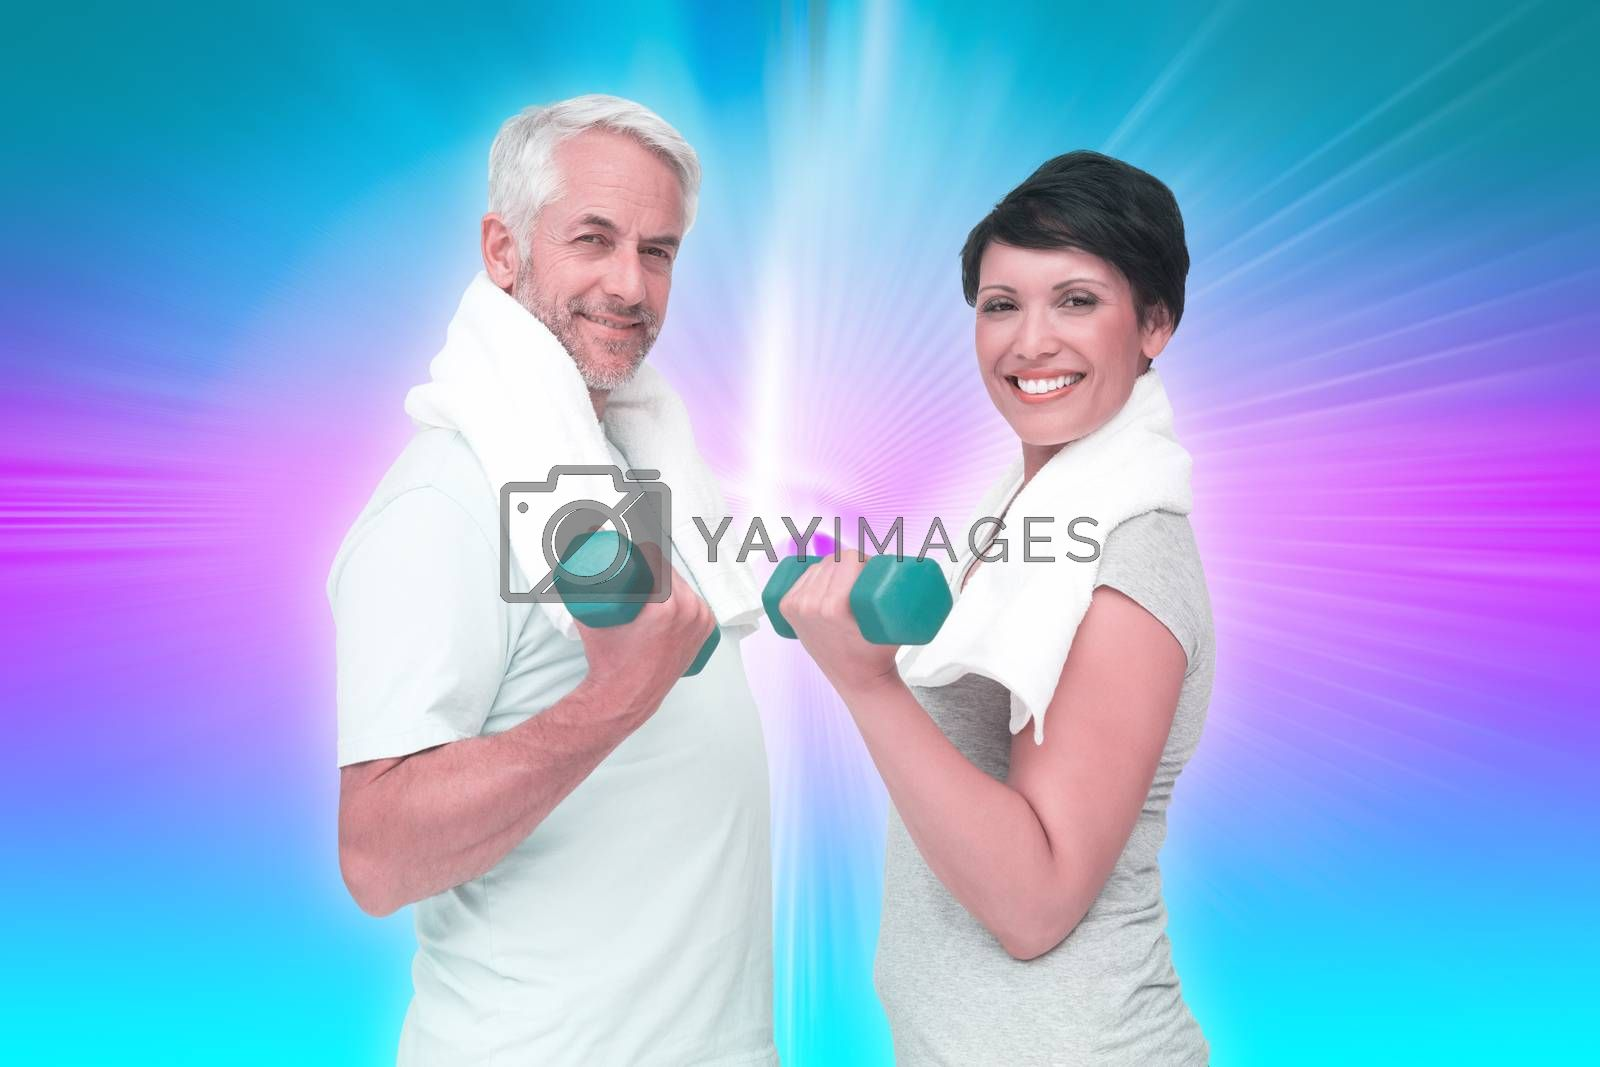 Fit mature couple exercising with dumbbells against abstract background